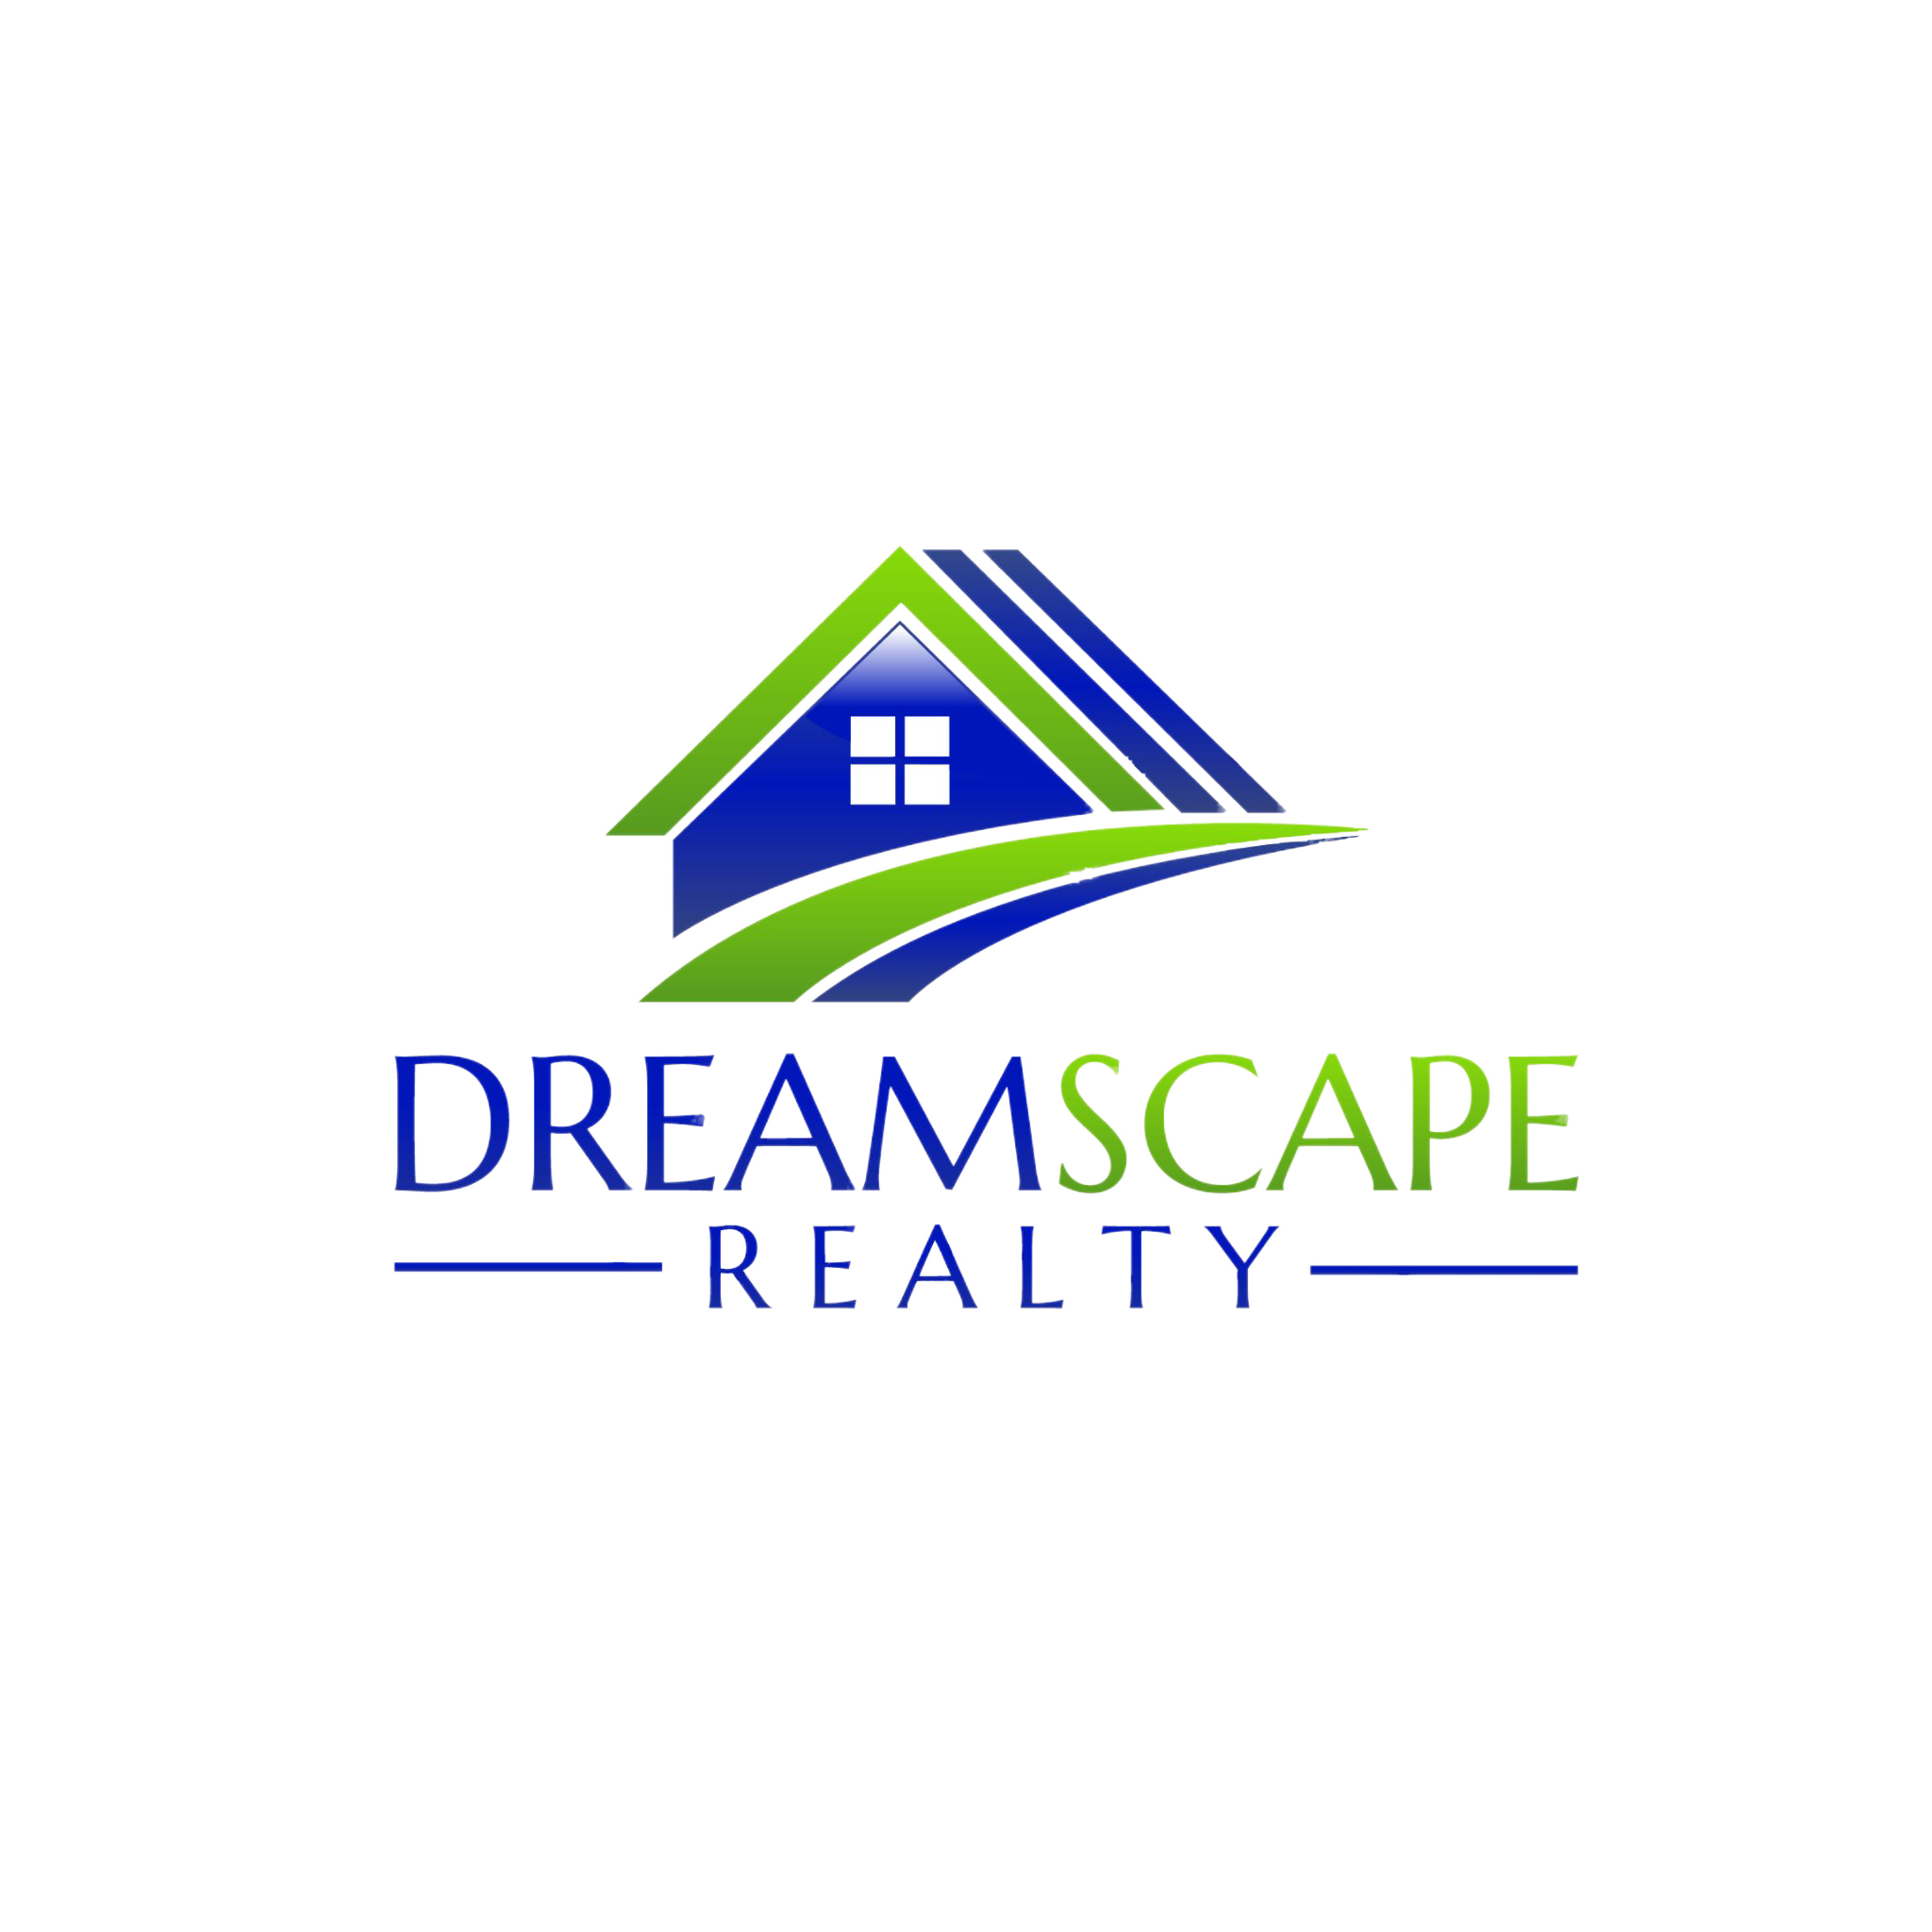 Dreamscape Realty LLC